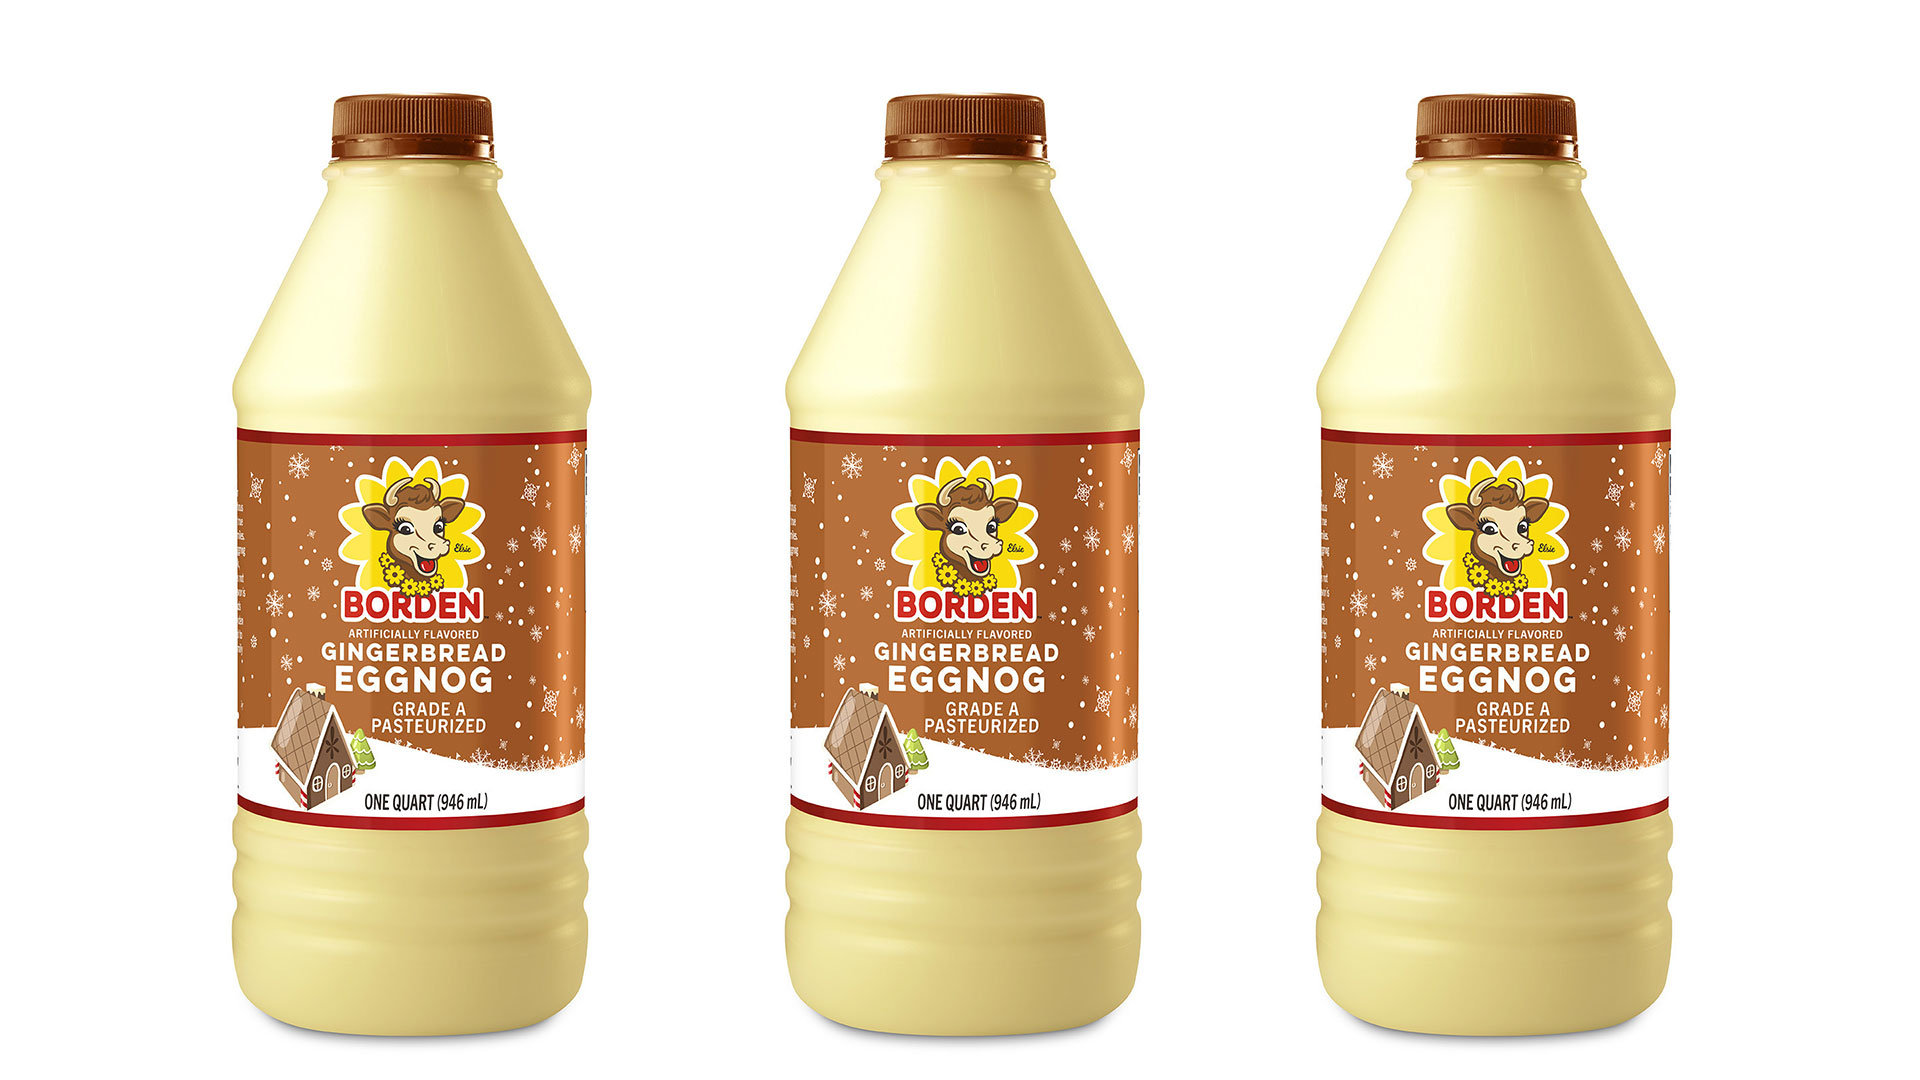 WATCH: Borden's New Gingerbread Eggnog Is Here to Spice up Your Holidays